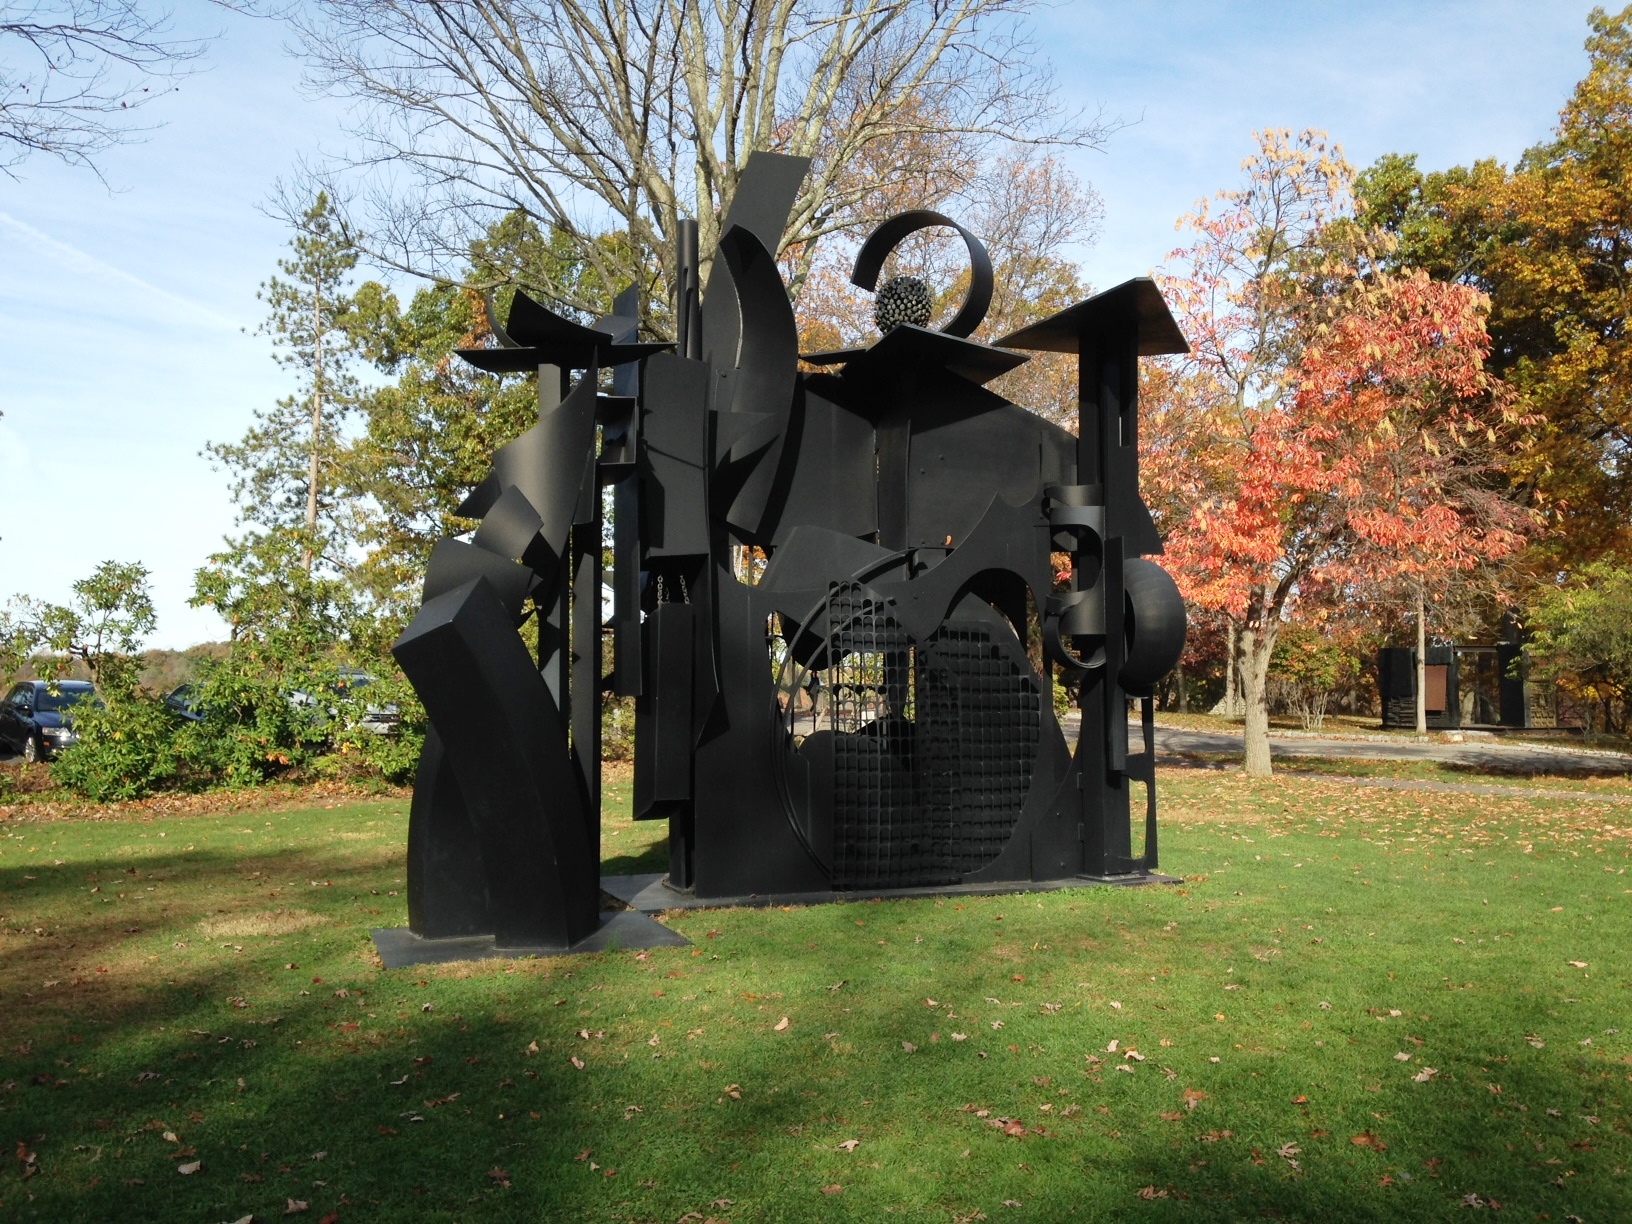 Outdoor Sculpture Park in the Hudson Valley - Storm King